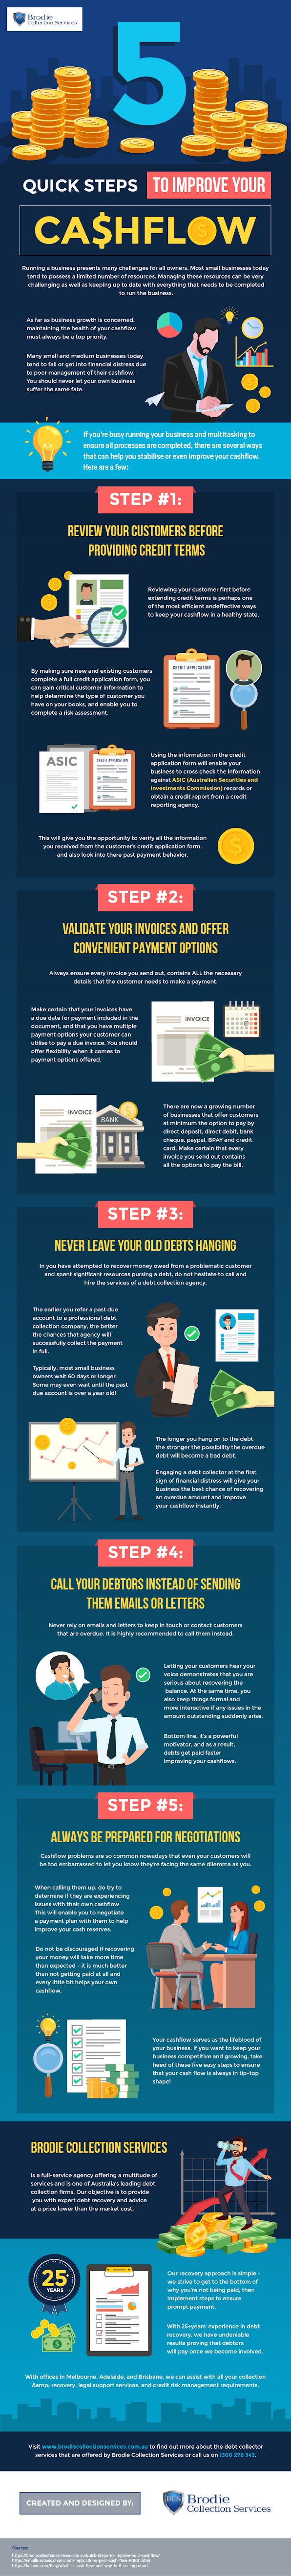 5 Quick Steps To Improve Your Cashflow #infographic